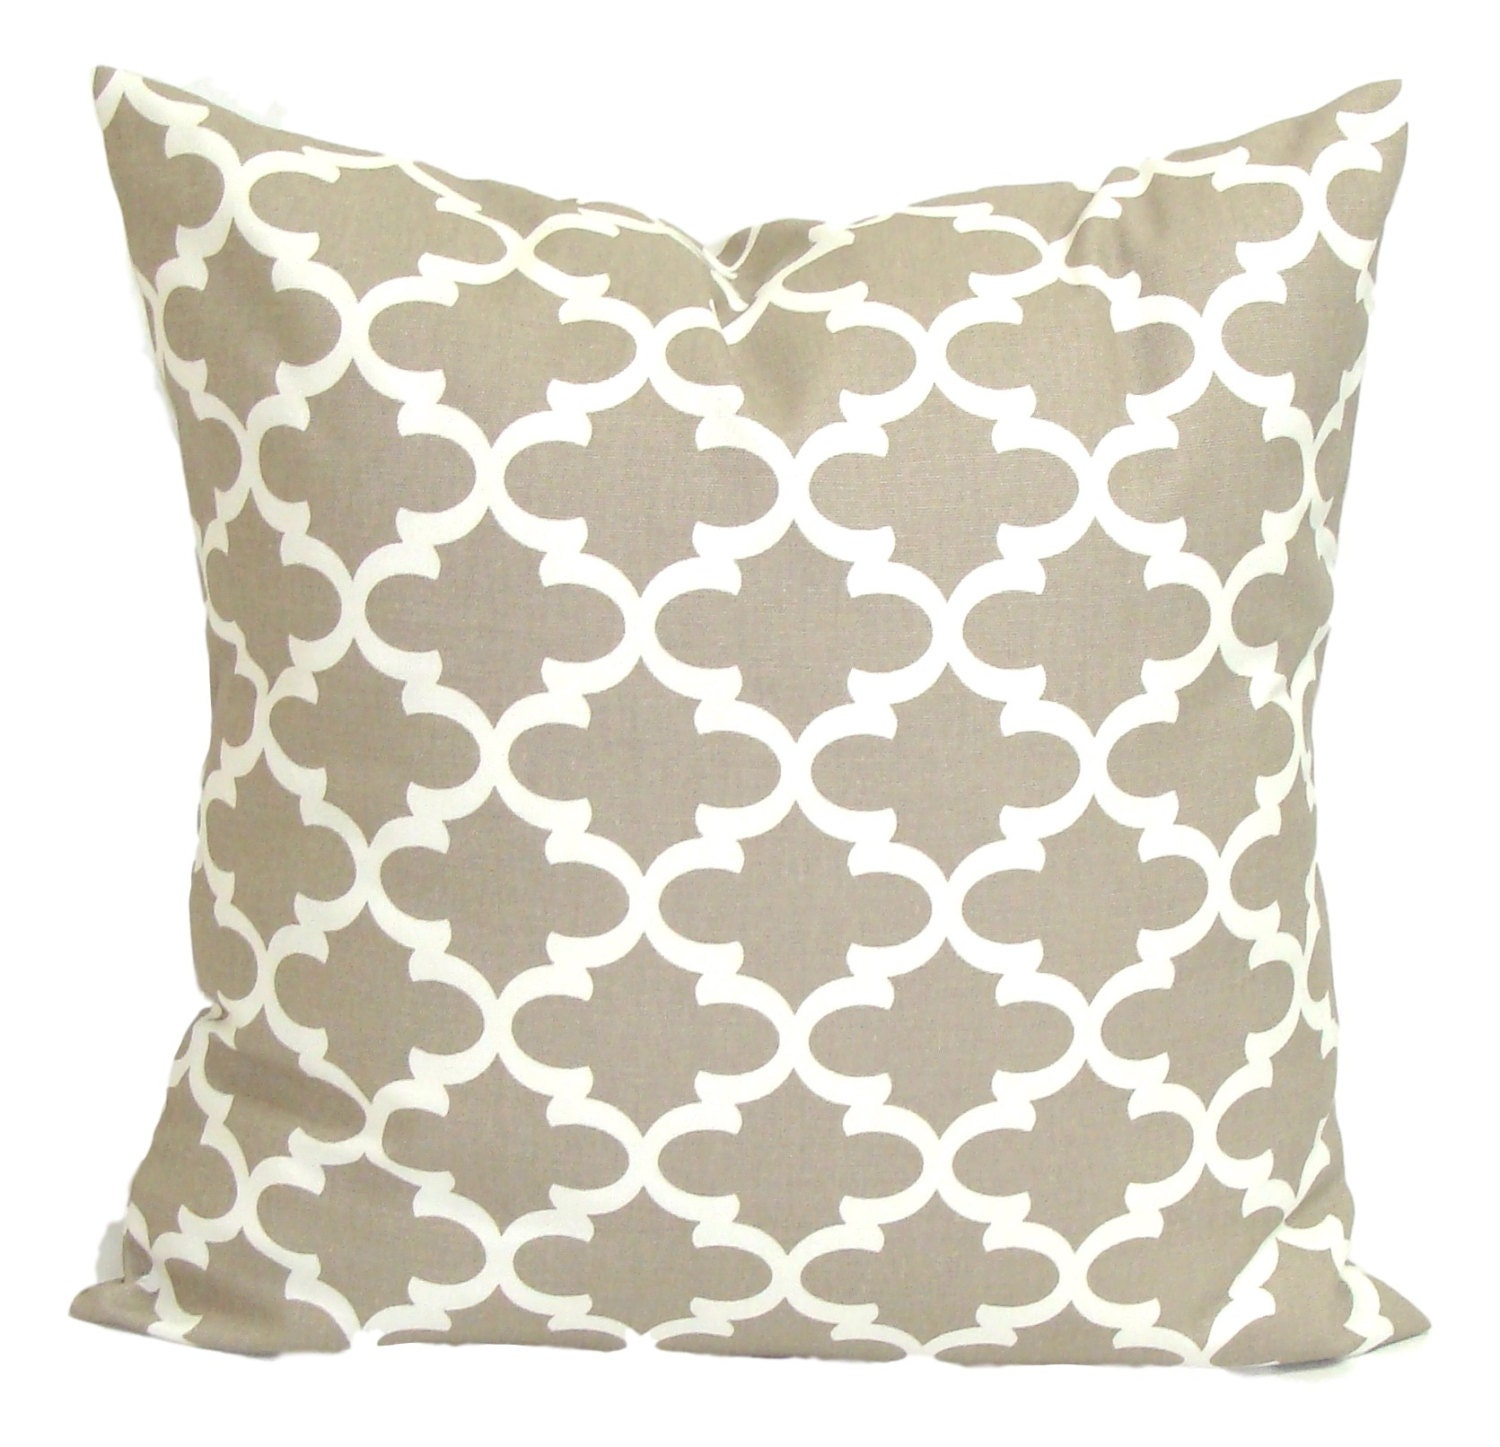 Light Brown Decorative Pillows : Light Brown PILLOW Sale18x18 inch.Pillow Covers.Decorative